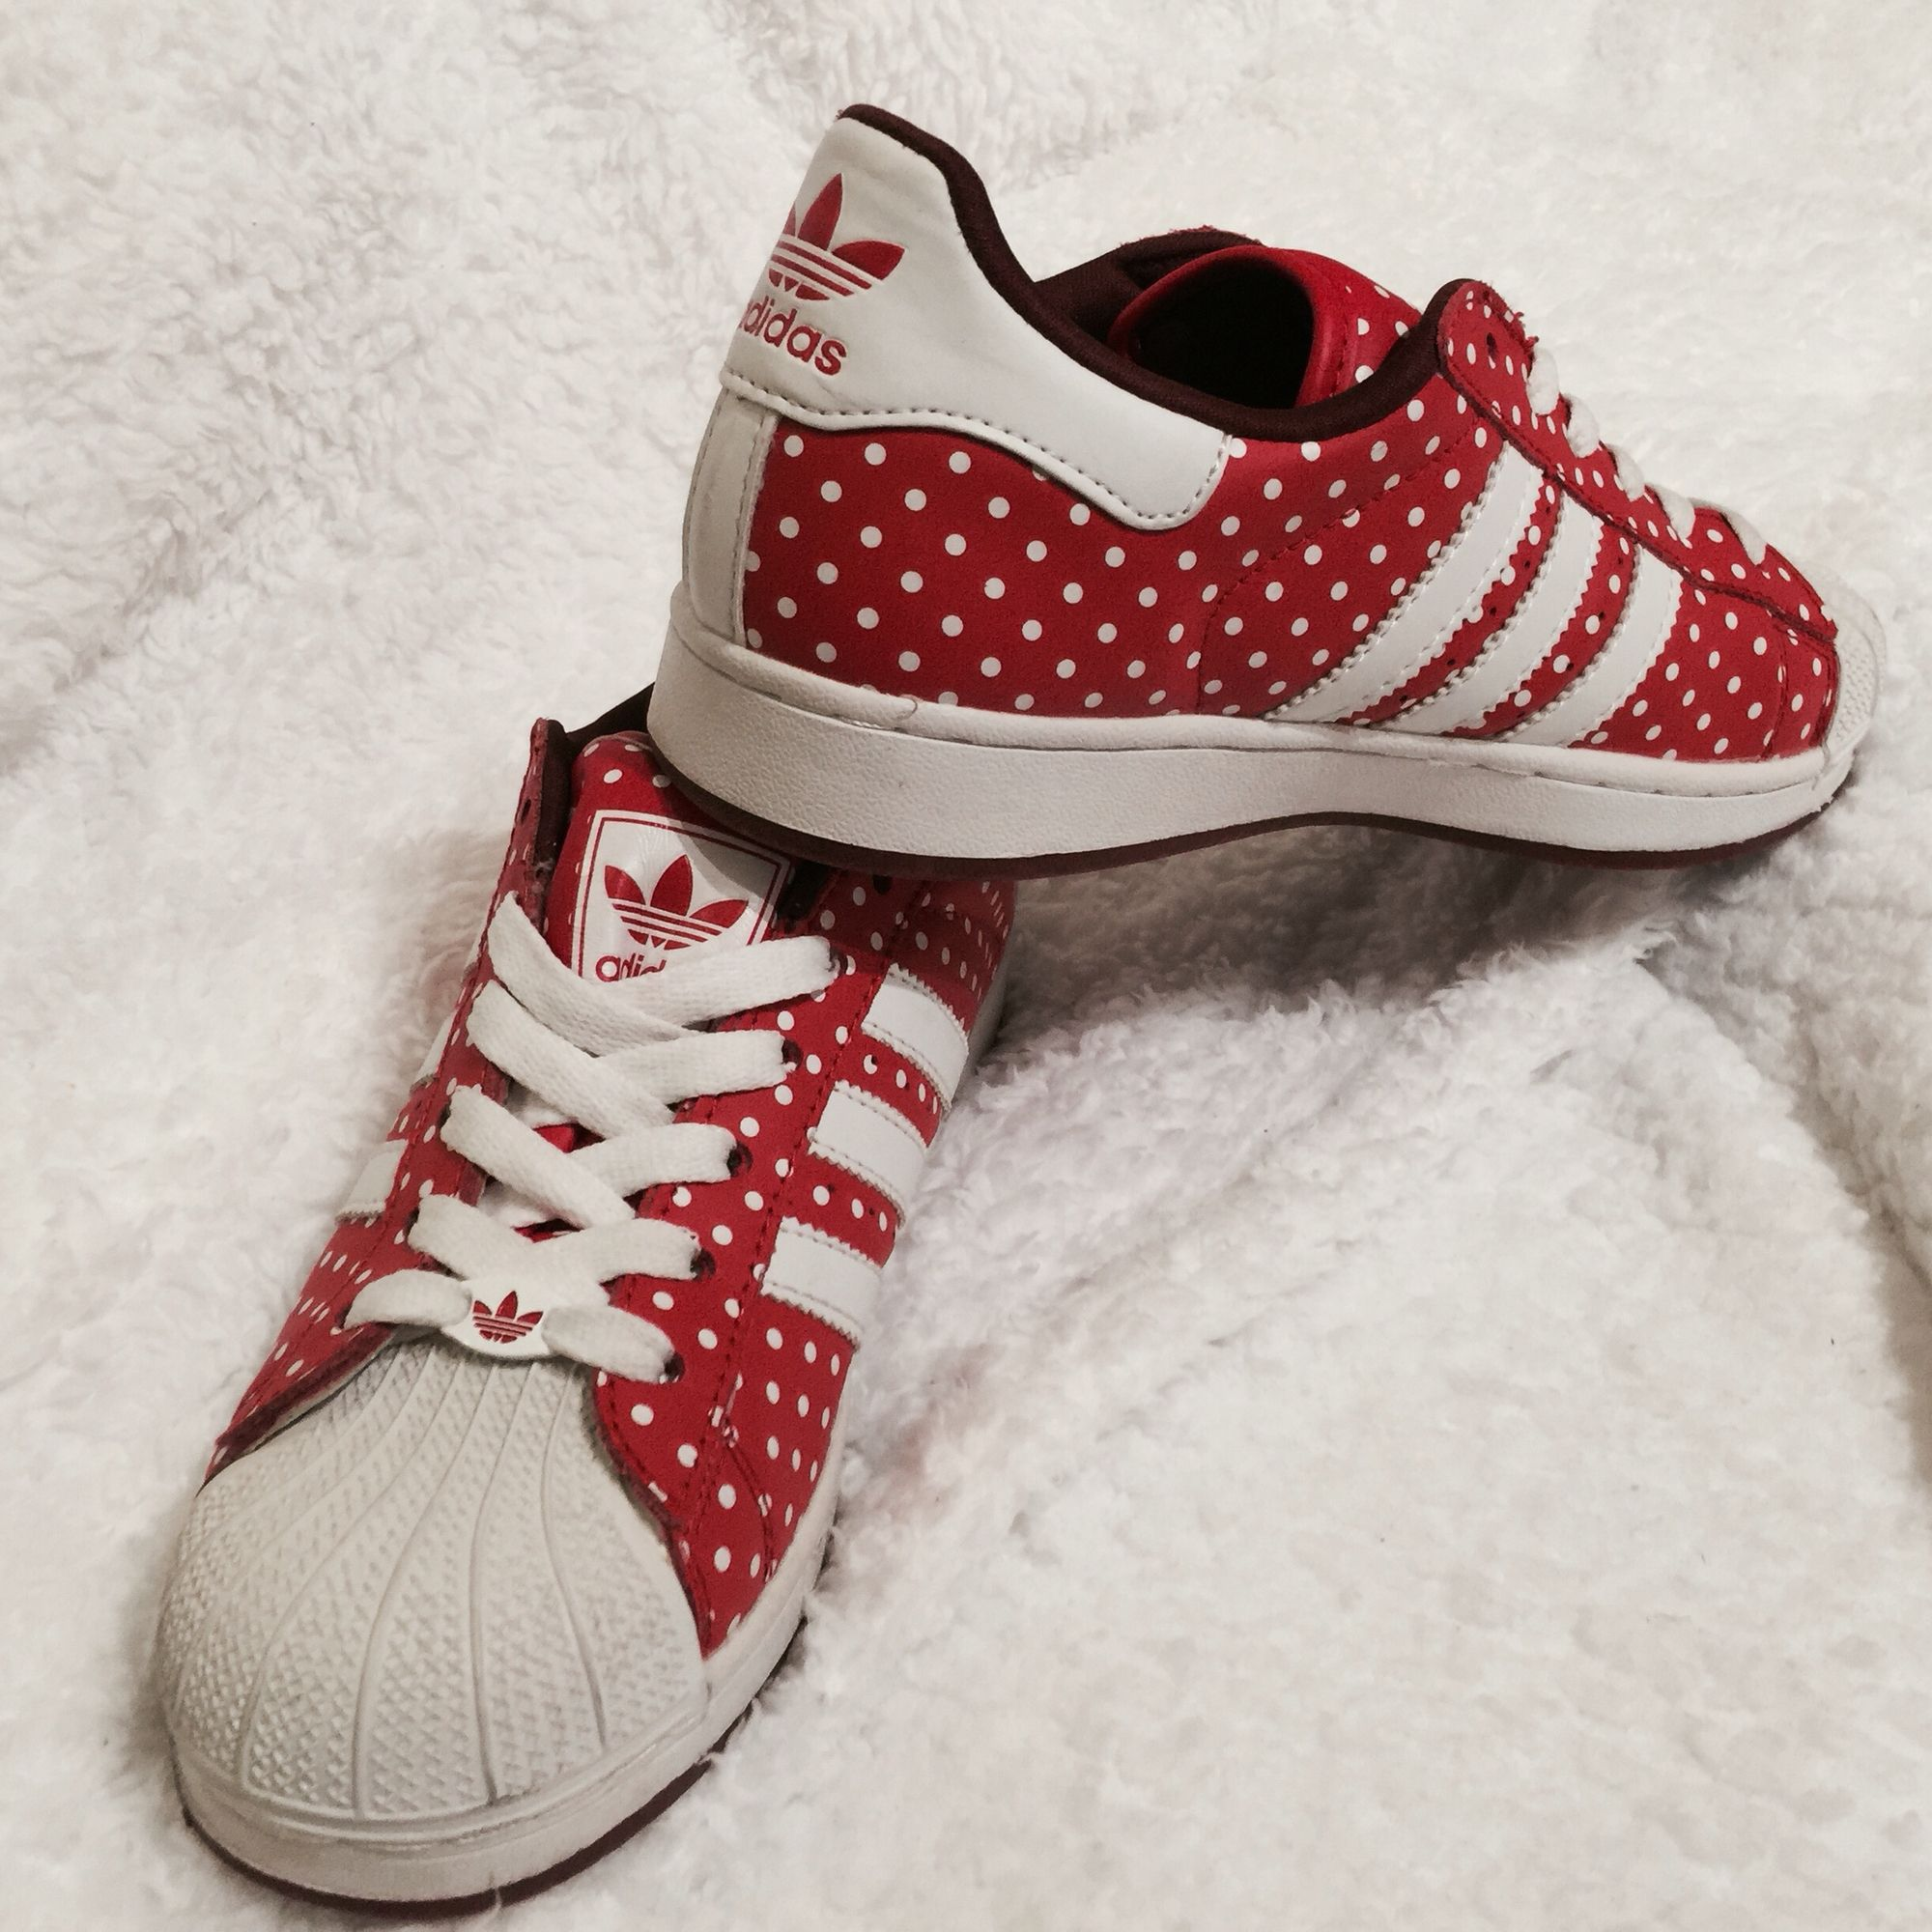 Adidas Red and White Spotty Polka Dot